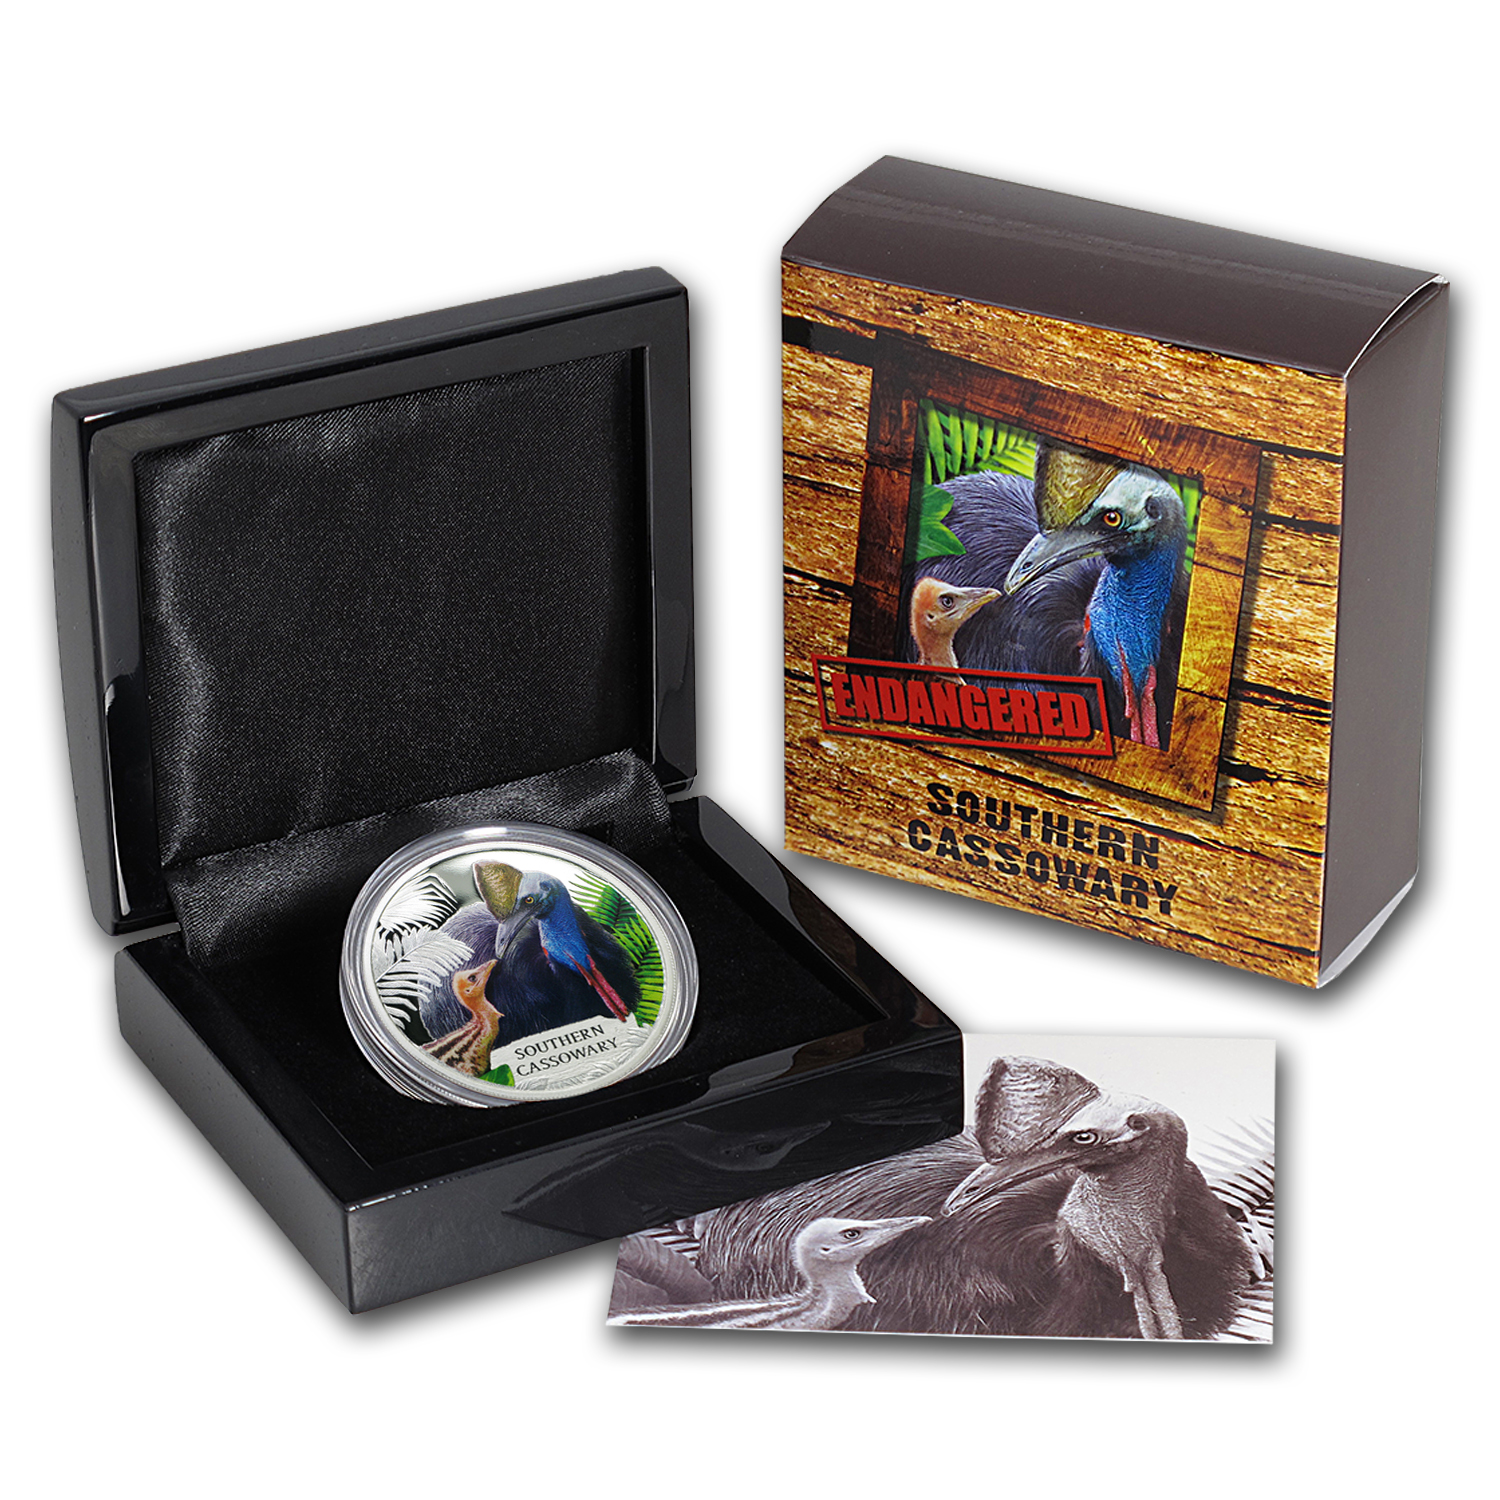 2016 Tuvalu 1 oz Silver Southern Cassowary Proof